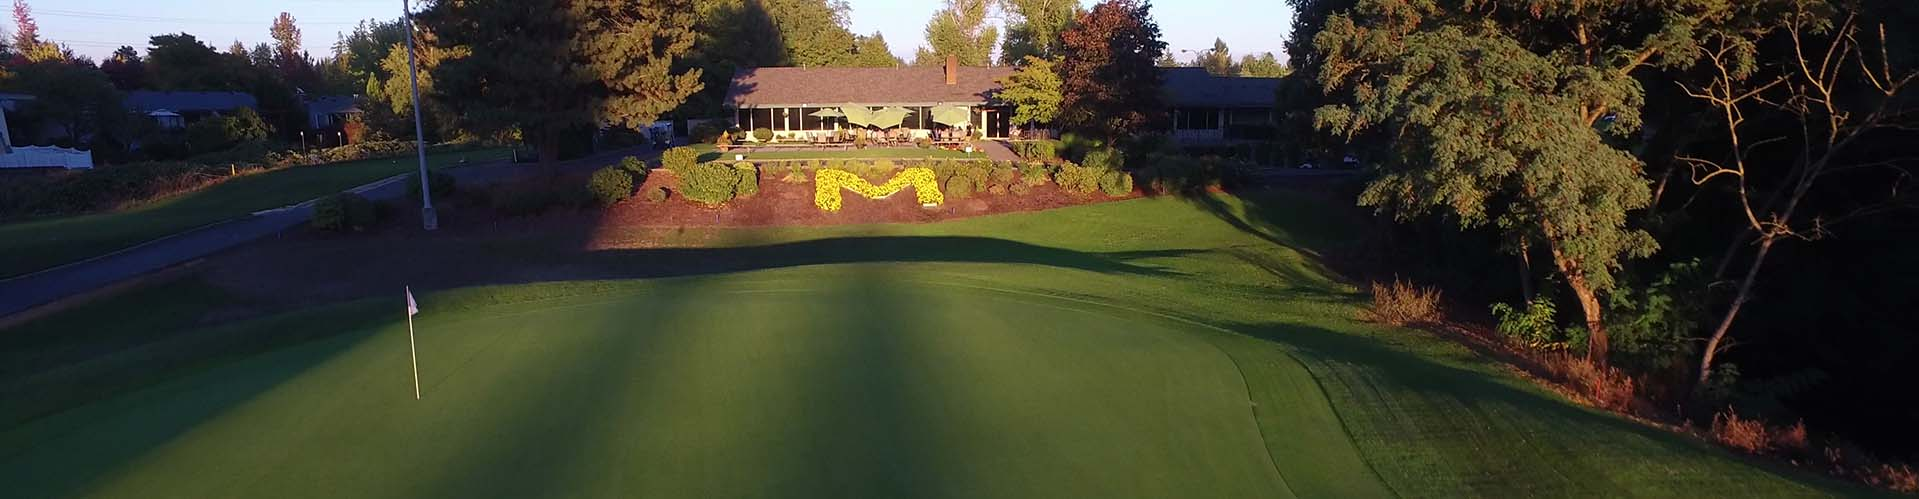 Mcnary Golf Club course image